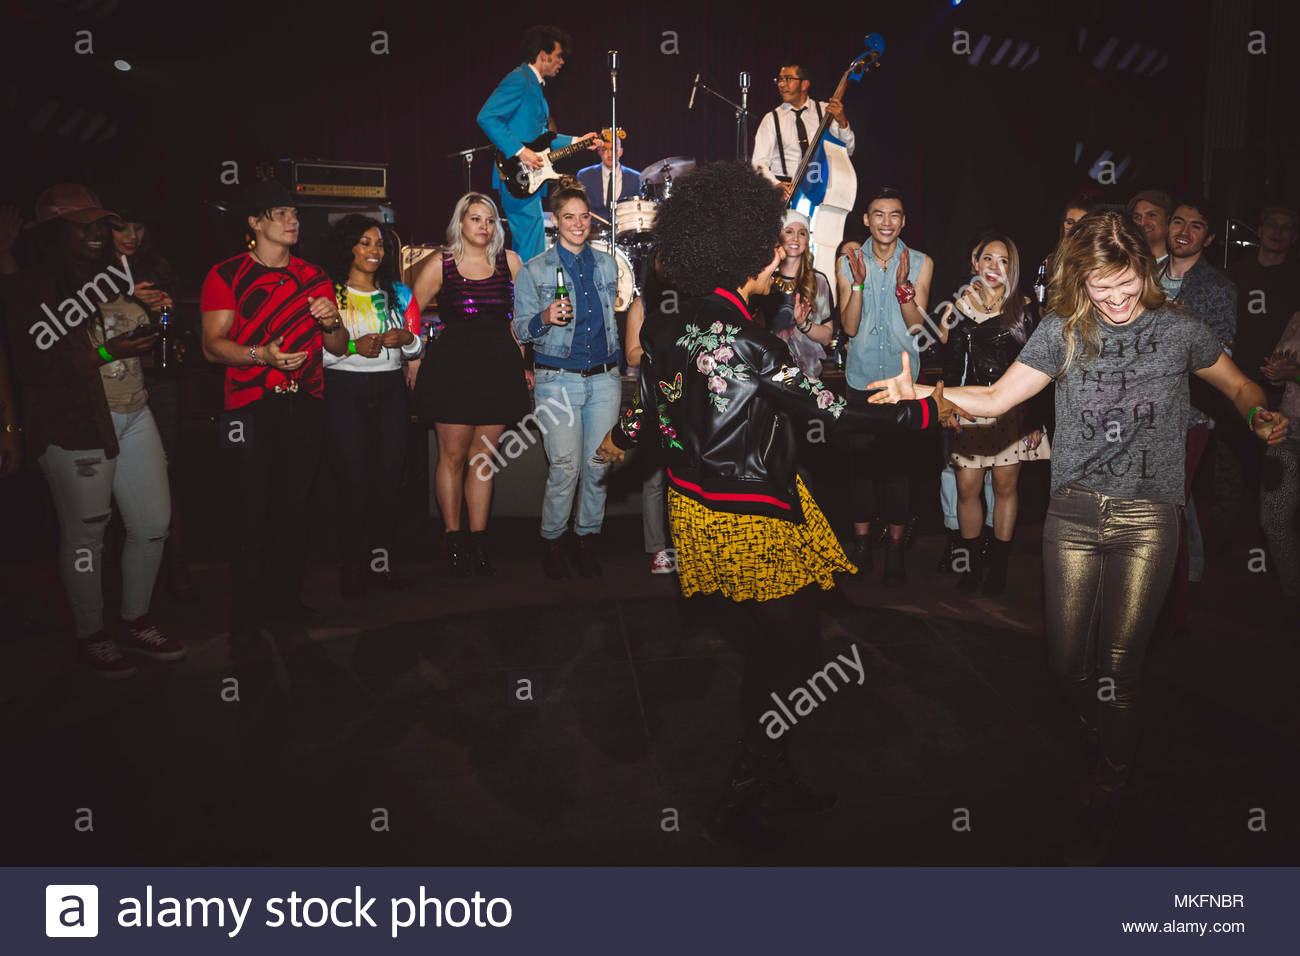 Milennials dancing and partying, enjoying music concert at nightclub - Stock Image